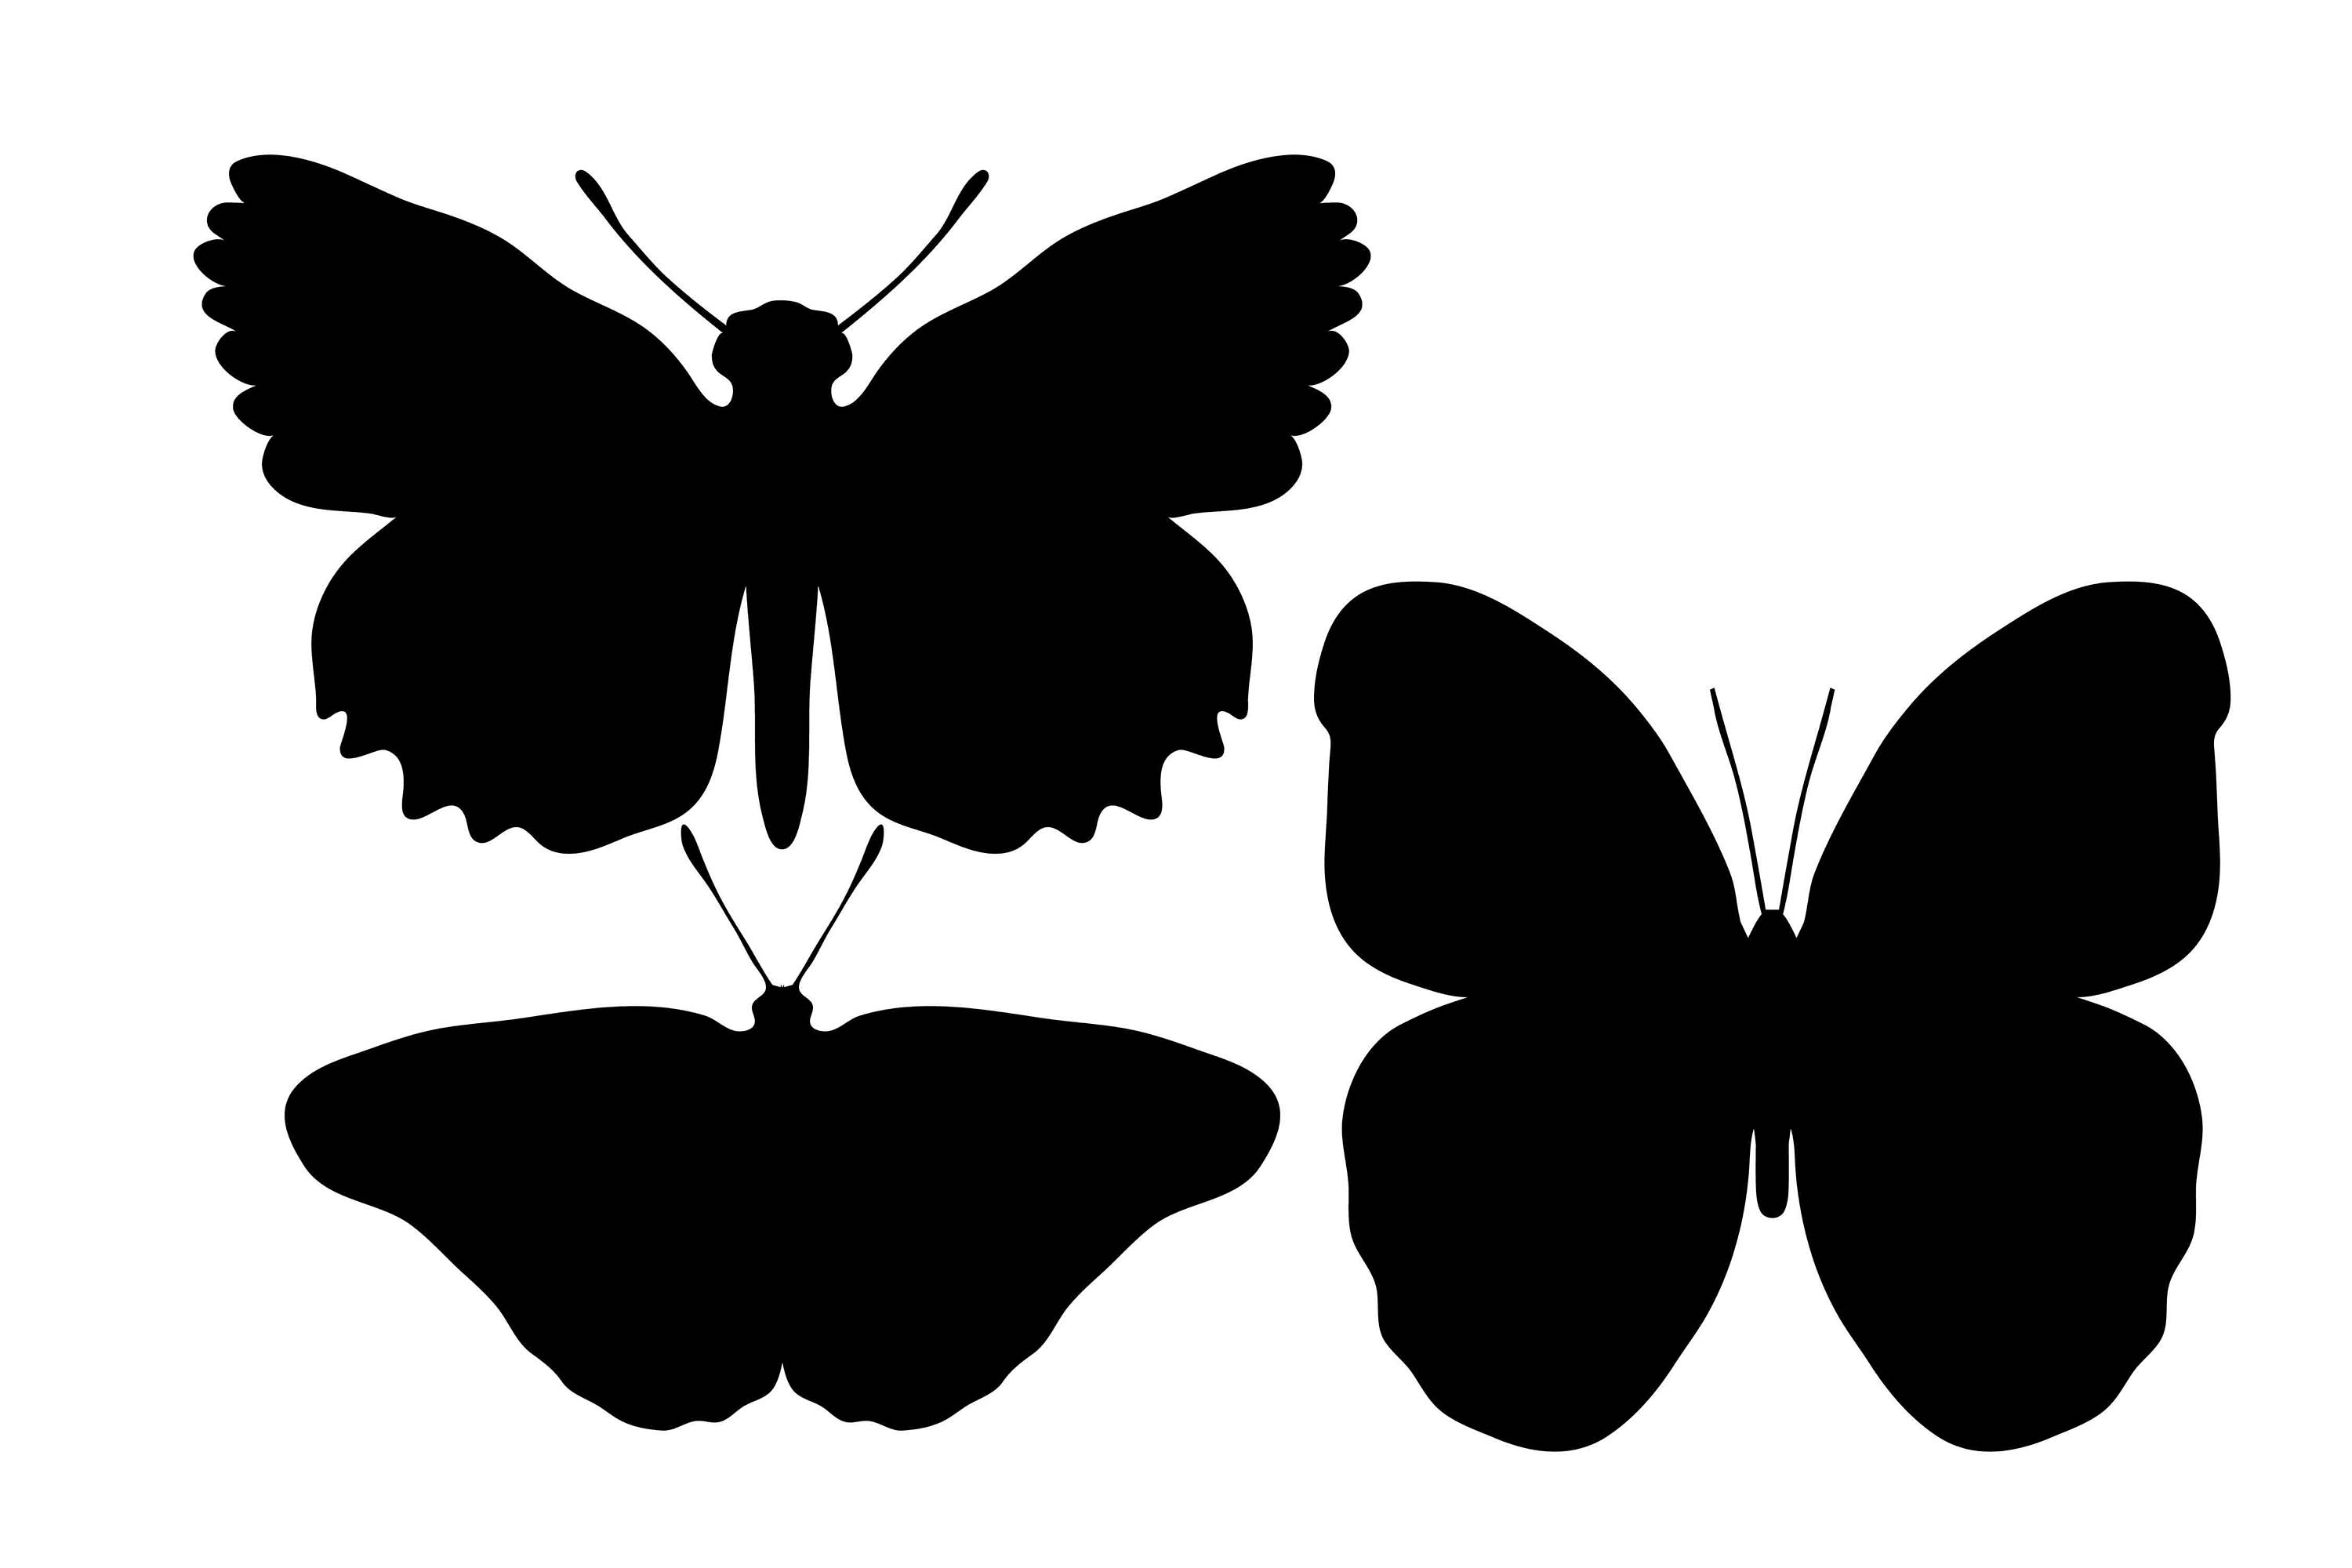 3000x2000 Butterfly Silhouette, Butterfly Clipart, Black Butterflies, Insect